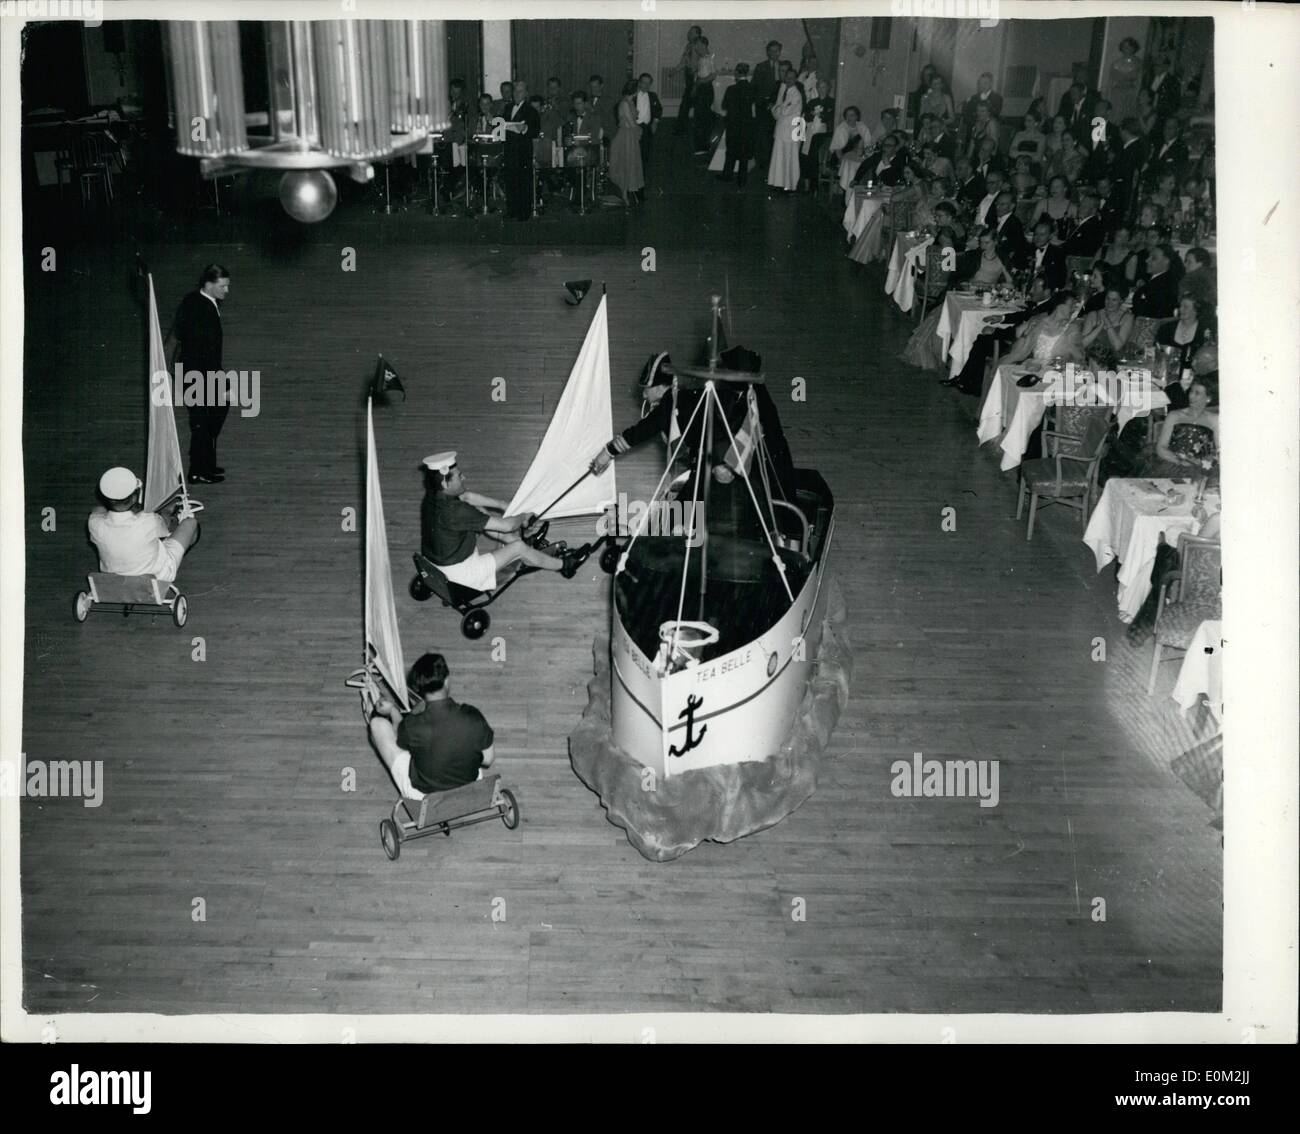 Apr. 04, 1953 - Yacht race in a hotel: At the Lord's Taverners Ball, held at Grosvenor House last night, a novel yacht race was - Stock Image